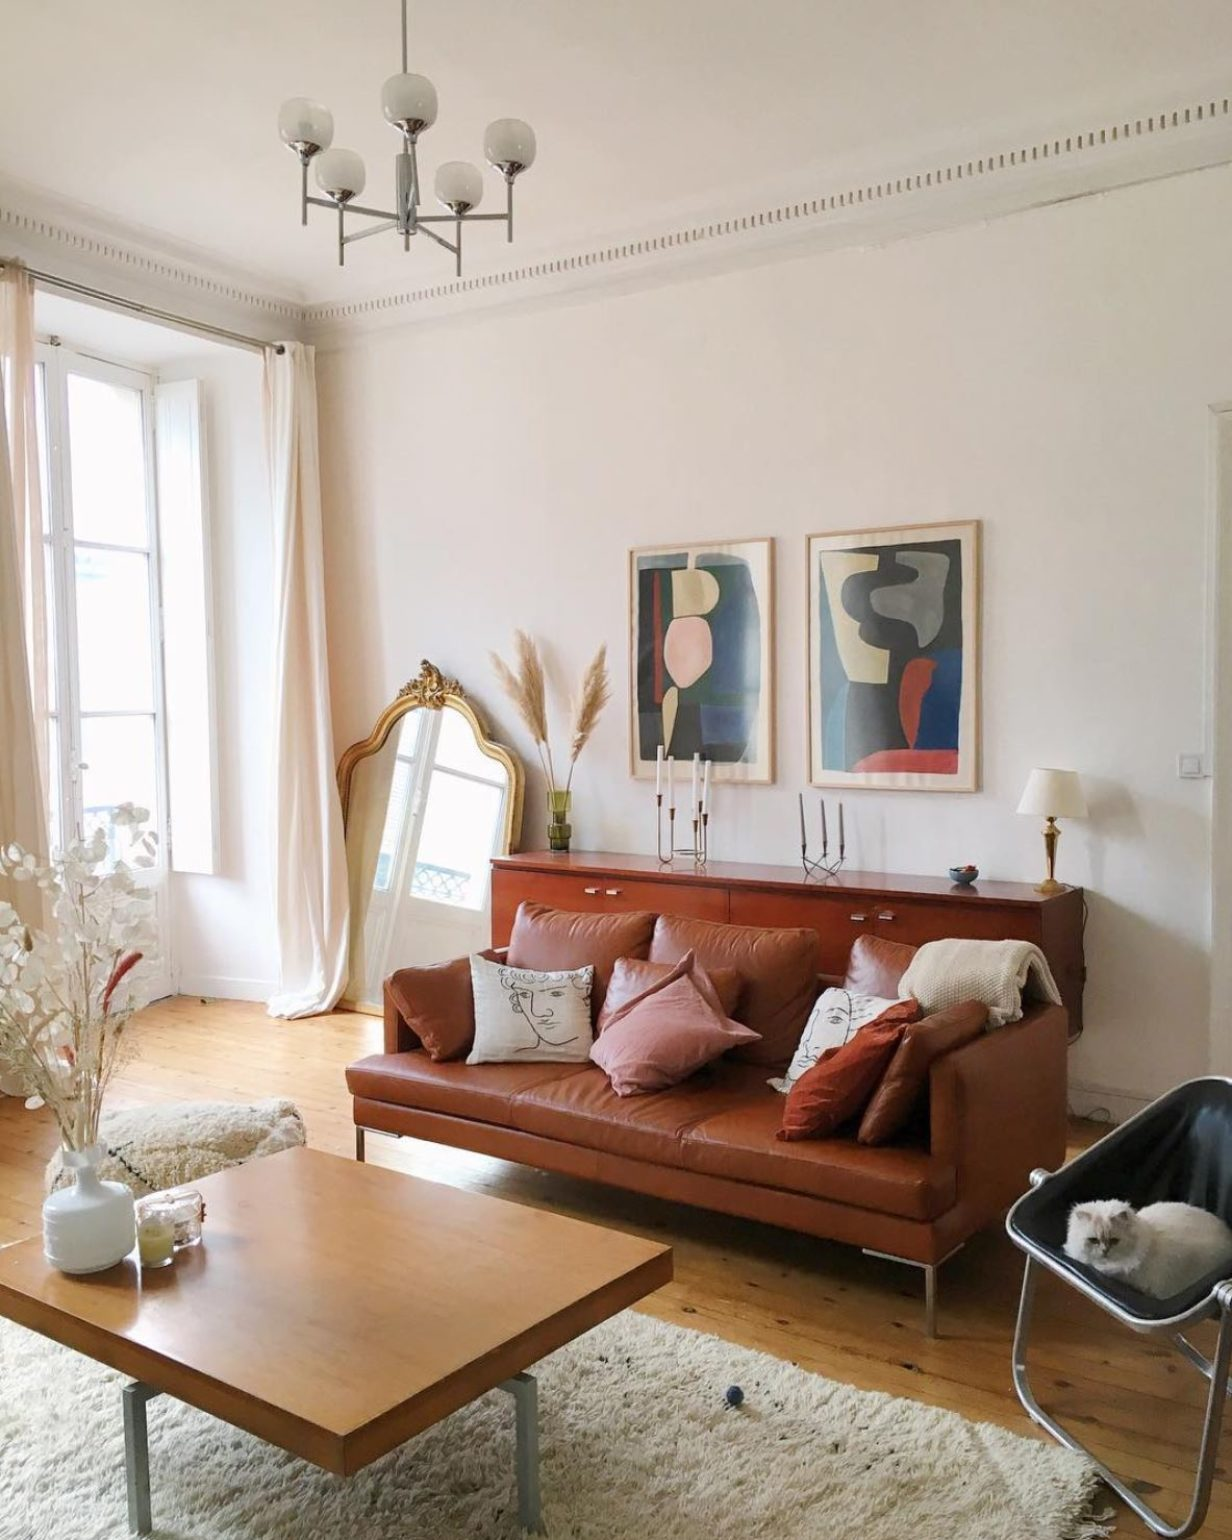 Looking For Apartment: How To Make Your Apartment Look Parisian Wherever You Live